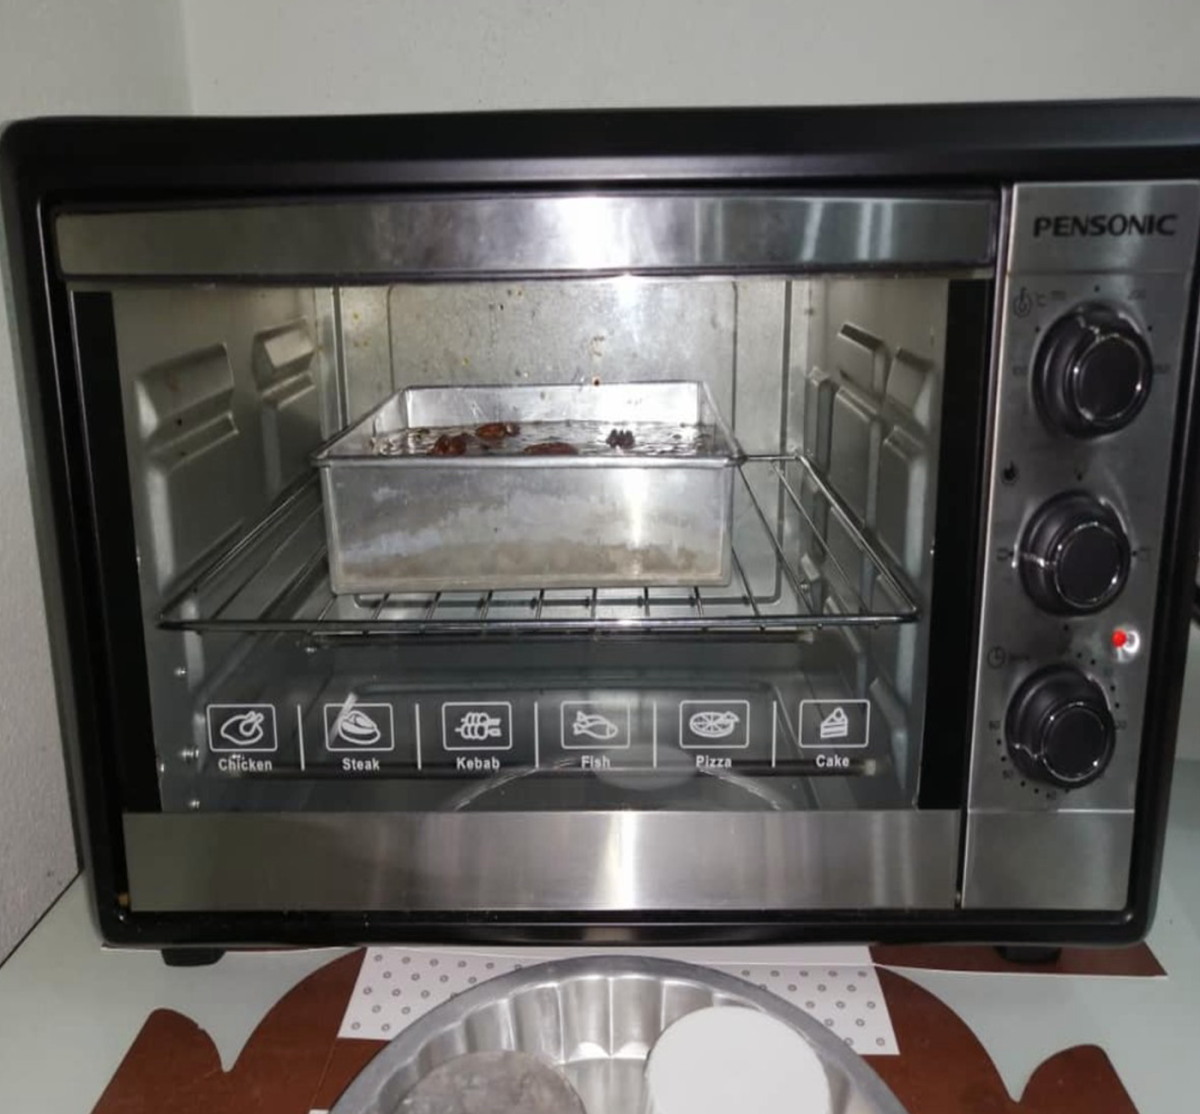 The cake is baked in an oven set at 160°C for an hour